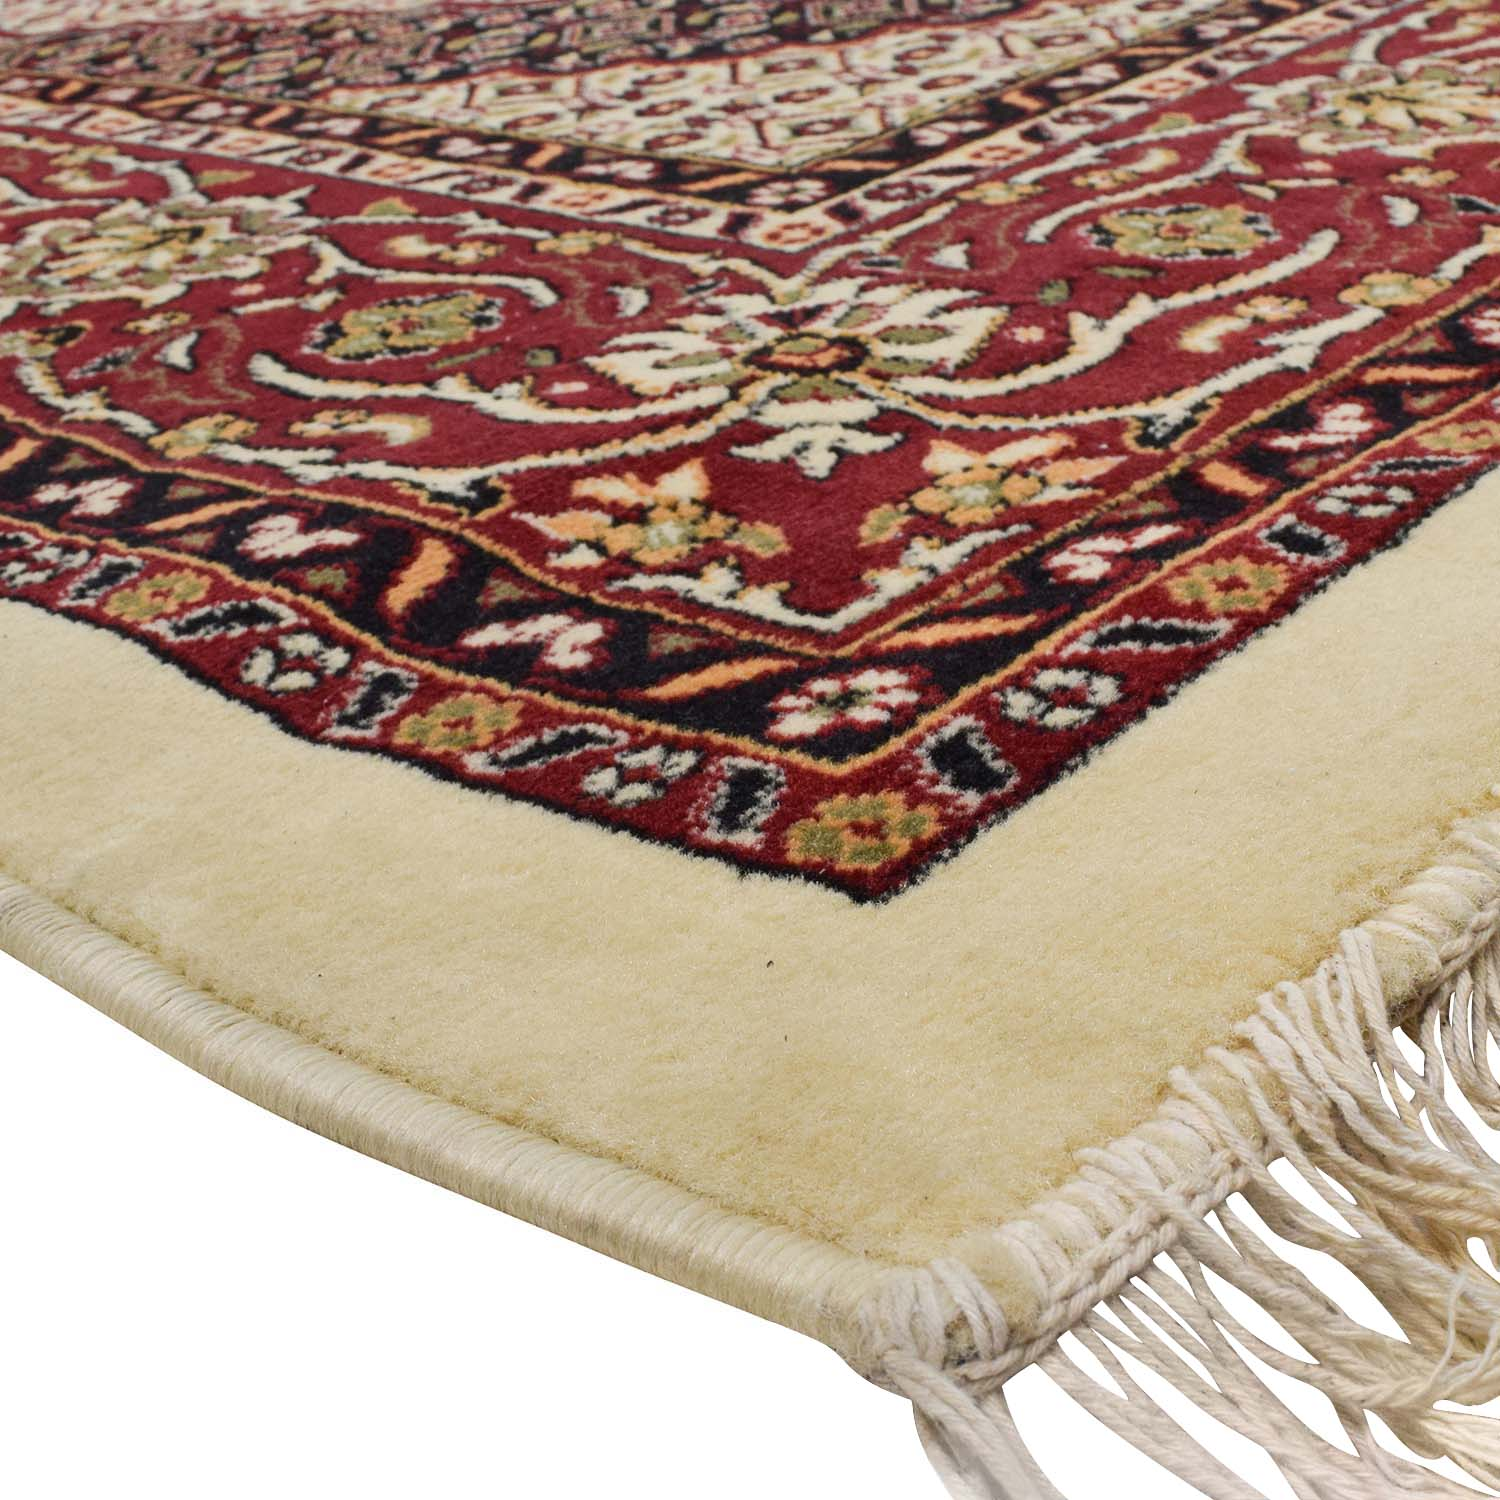 Tabriz Ivory, Burgundy and Navy Turkish Rug Decor